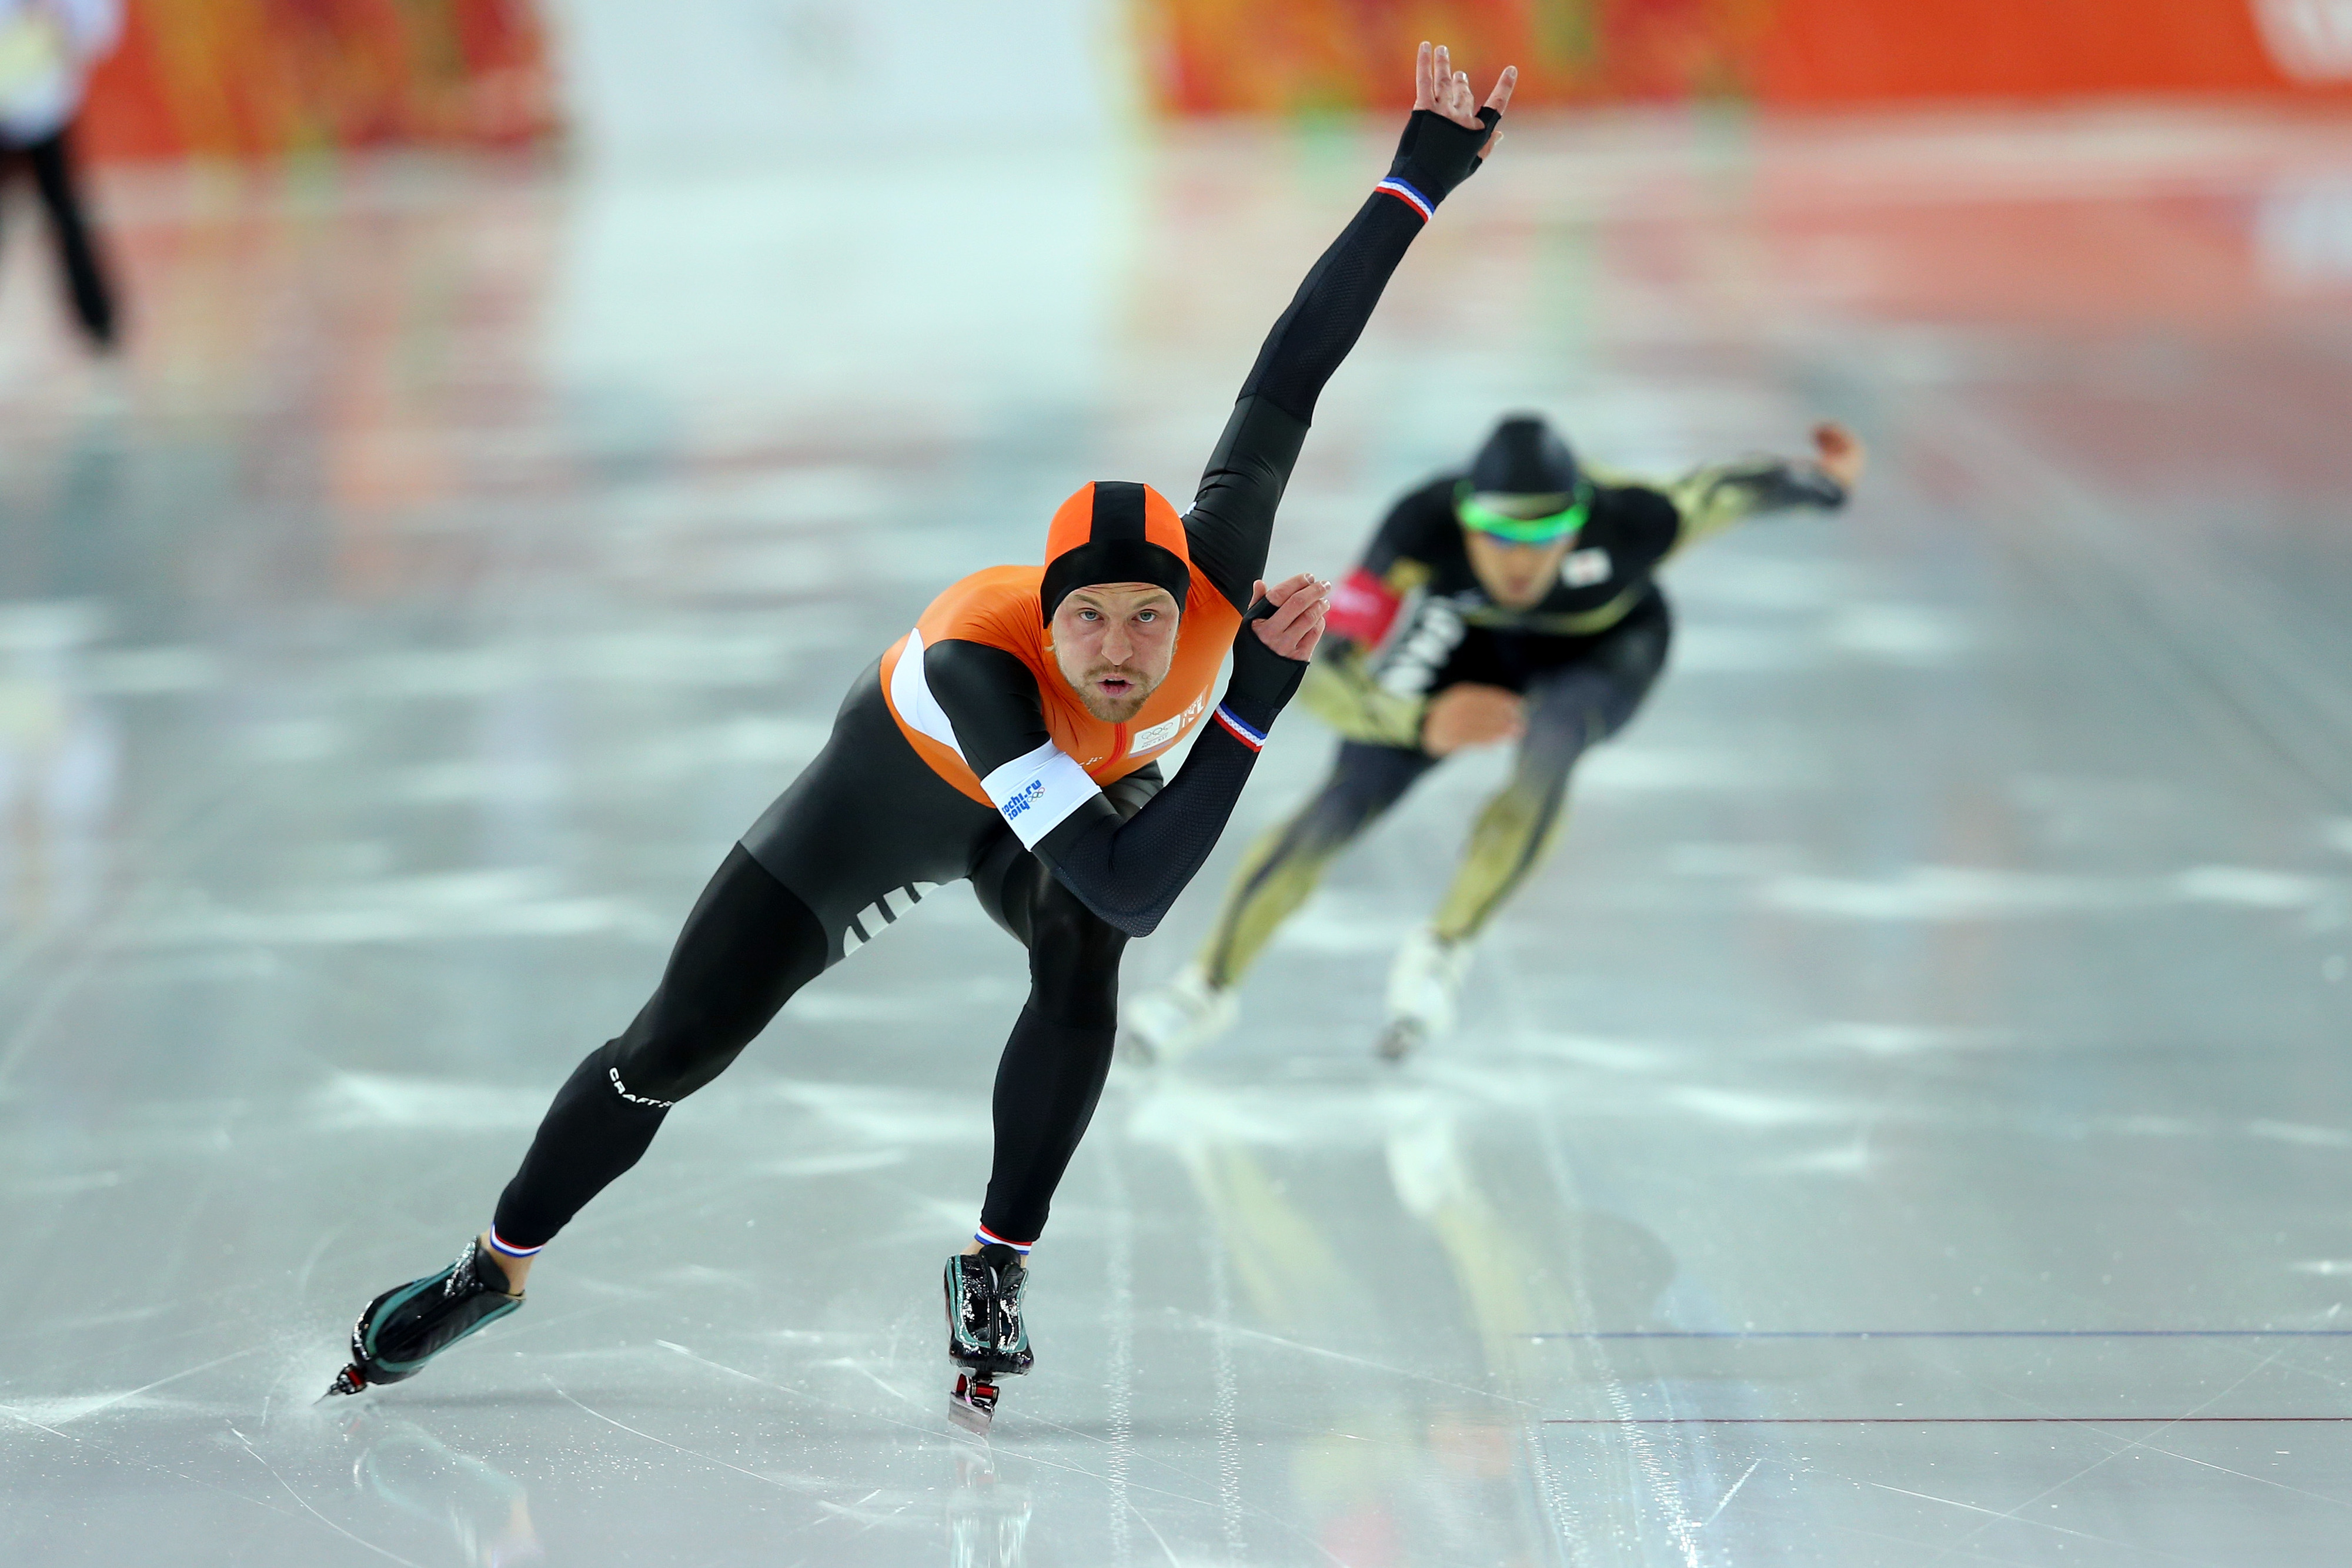 Winter Olympics 2014 speed skating results: Netherlands continues dominance